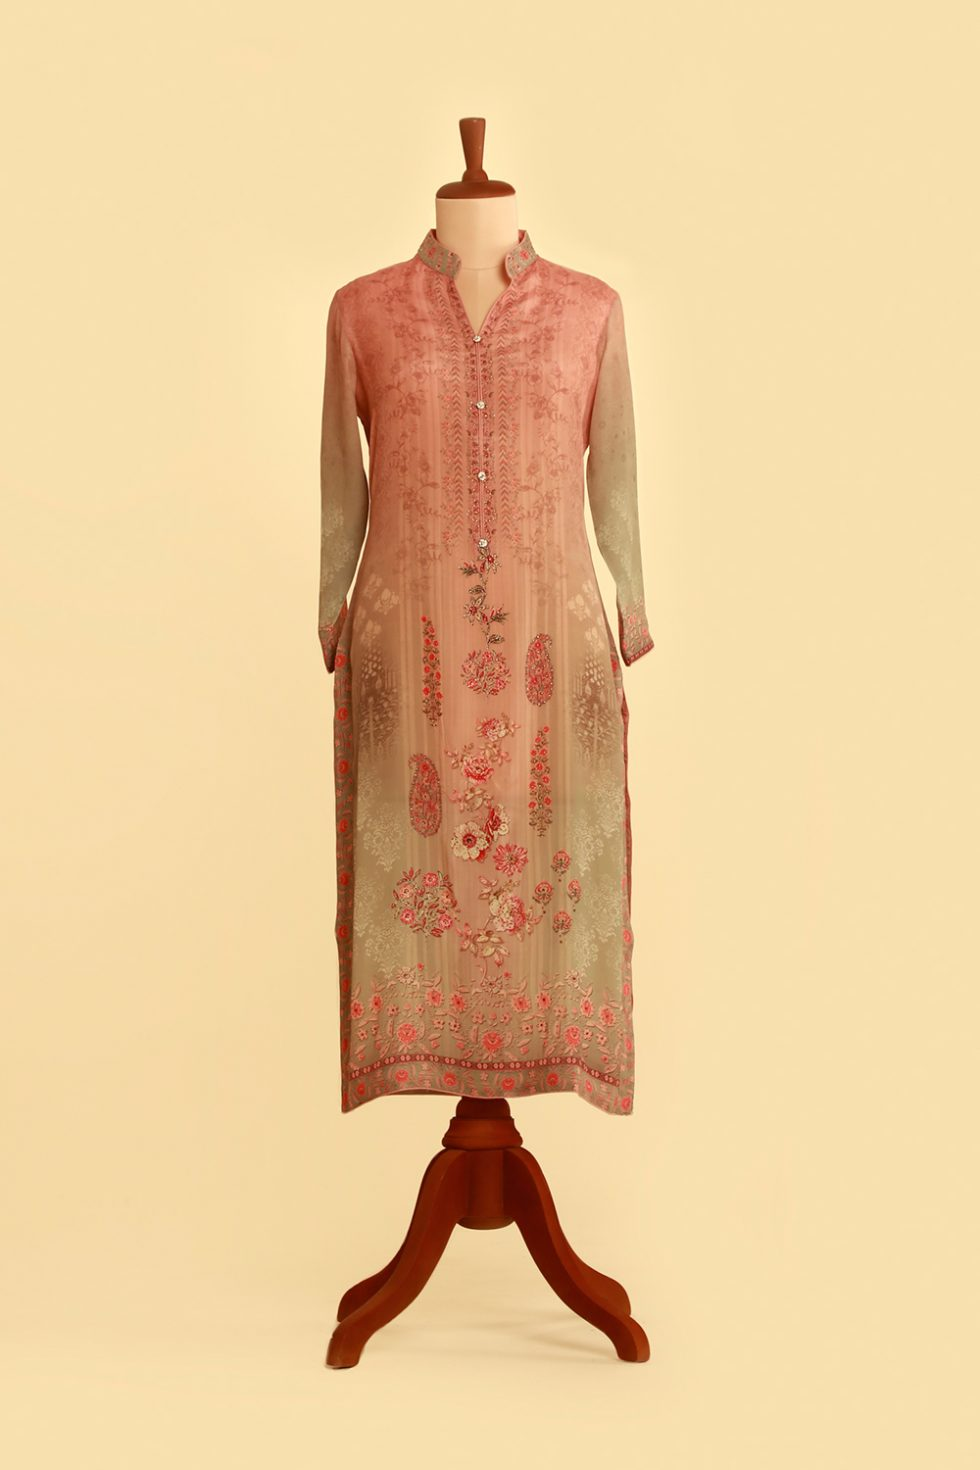 Ombré pink printed kurti with floral motifs and gold highlights